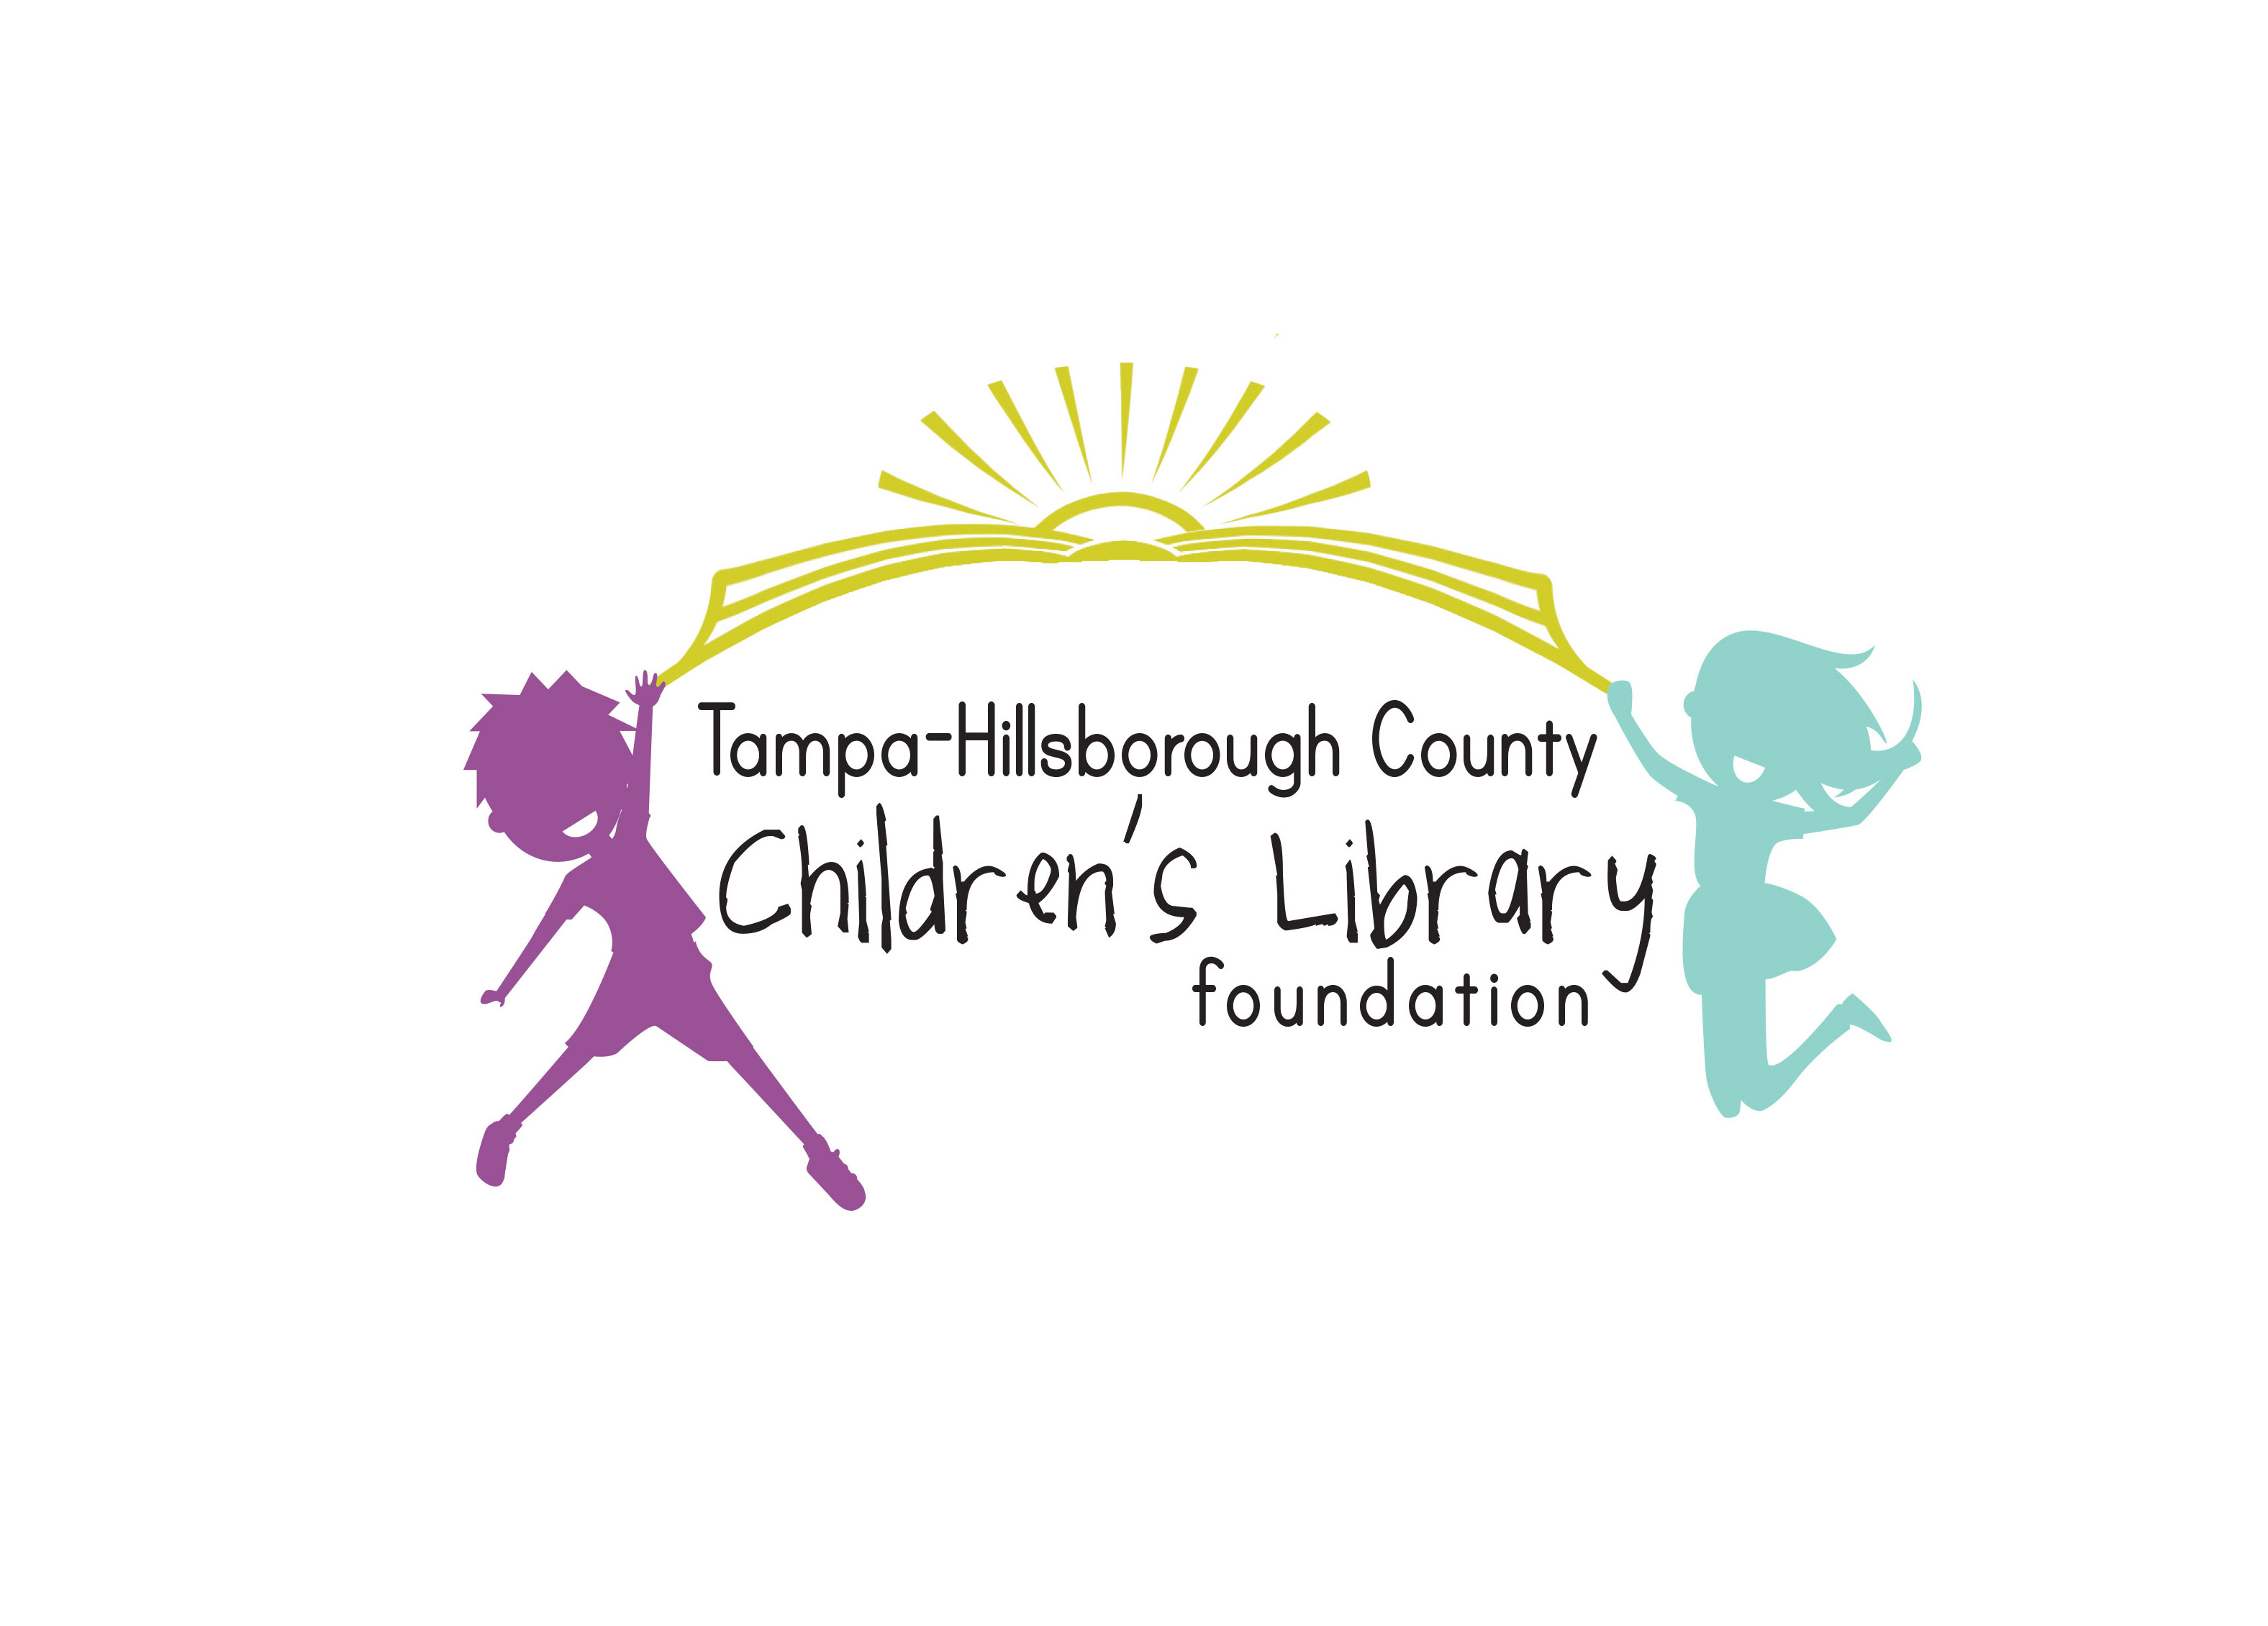 The Tampa-Hillsborough County Children's Library Foundation